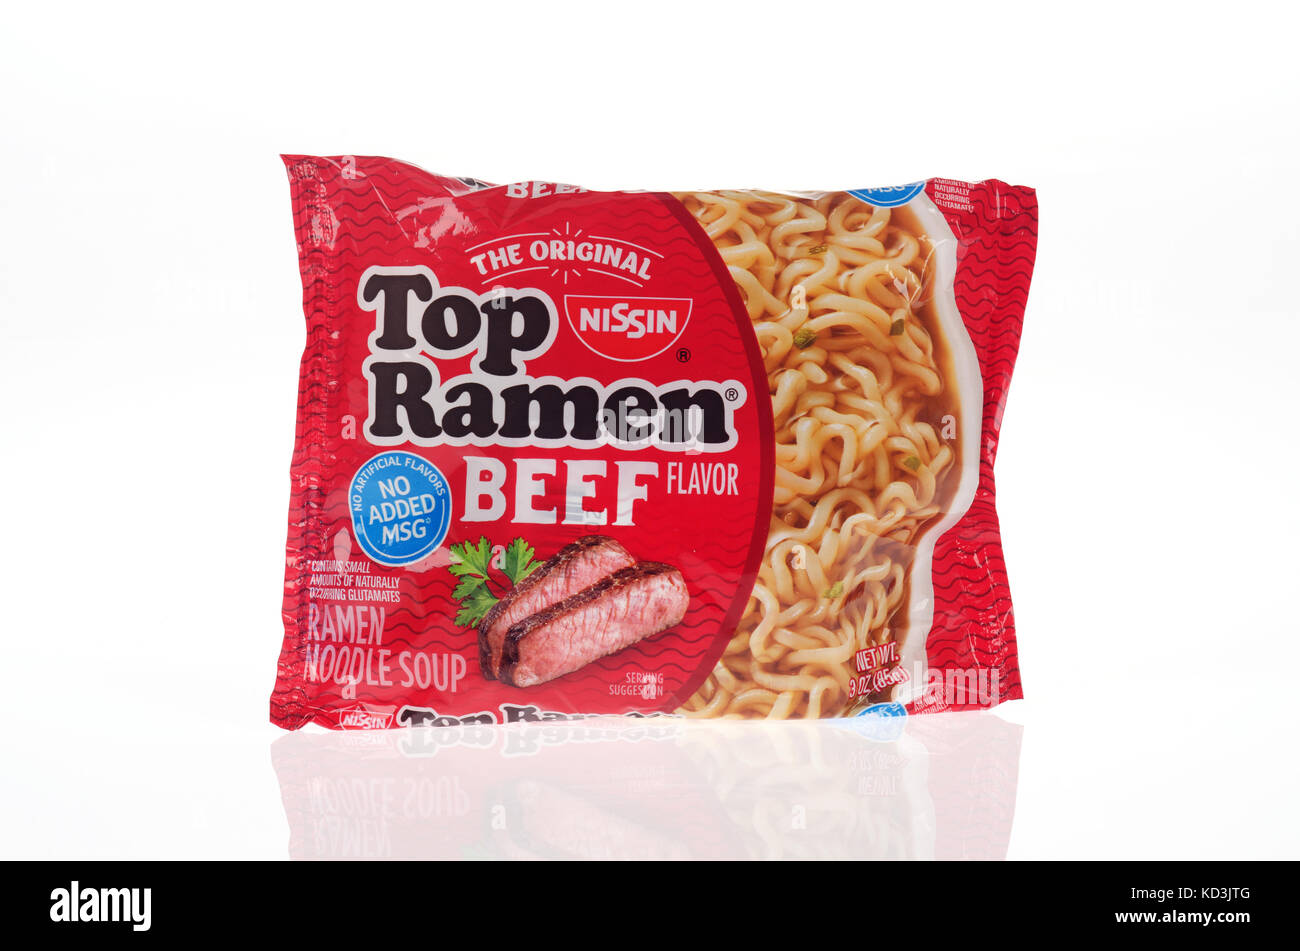 Unopened Original Nissin Ramen Noodles in Beef Flavor with new packaging with no added msg & no artificial flavors - Stock Image